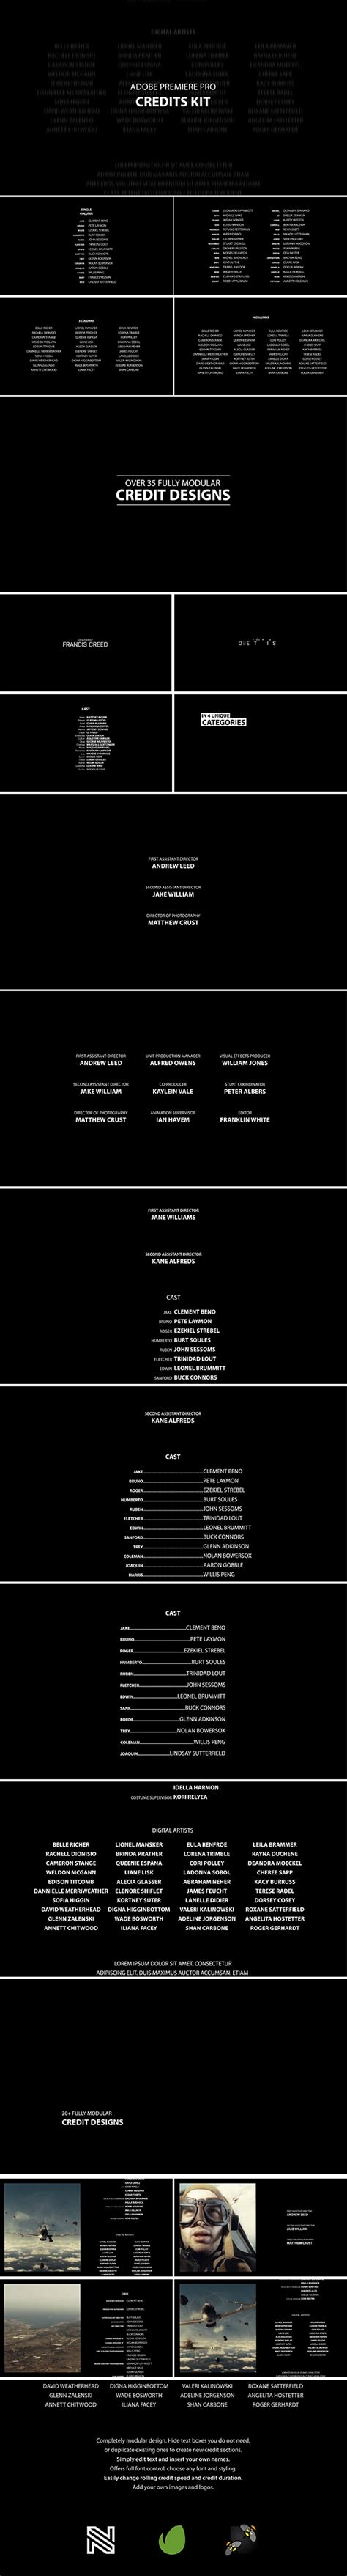 Videohive Film Credits Kit 187 Free After Effects Templates After Effects Intro Template Shareae Premiere Pro Credits Template Free